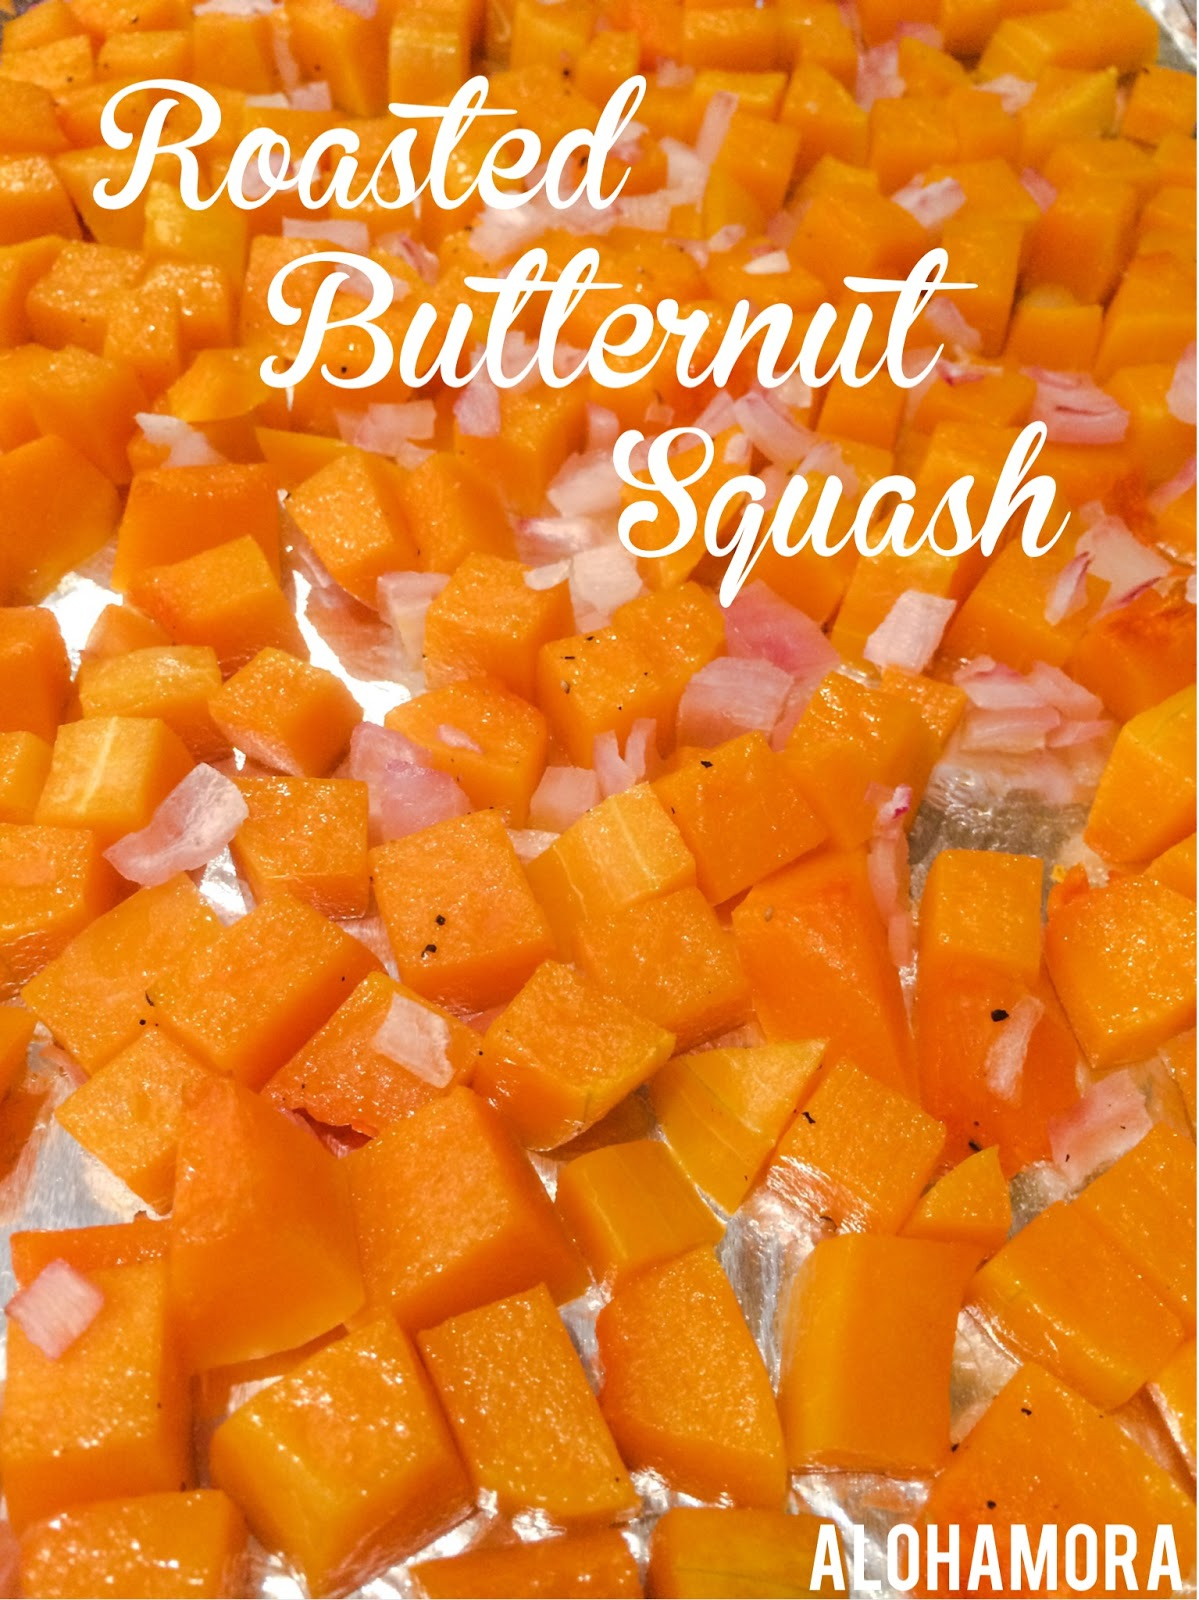 How to Cut and Cook/Roast a Butternut Squash.  It's easy to do, SOOOO much cheaper than buying it precut, and it's a healthy vegetable side dish.  You can also use roasted butternut squash in oh so many recipes.  Alohamora Open a Book http://alohamoraopenabook.blogspot.com/